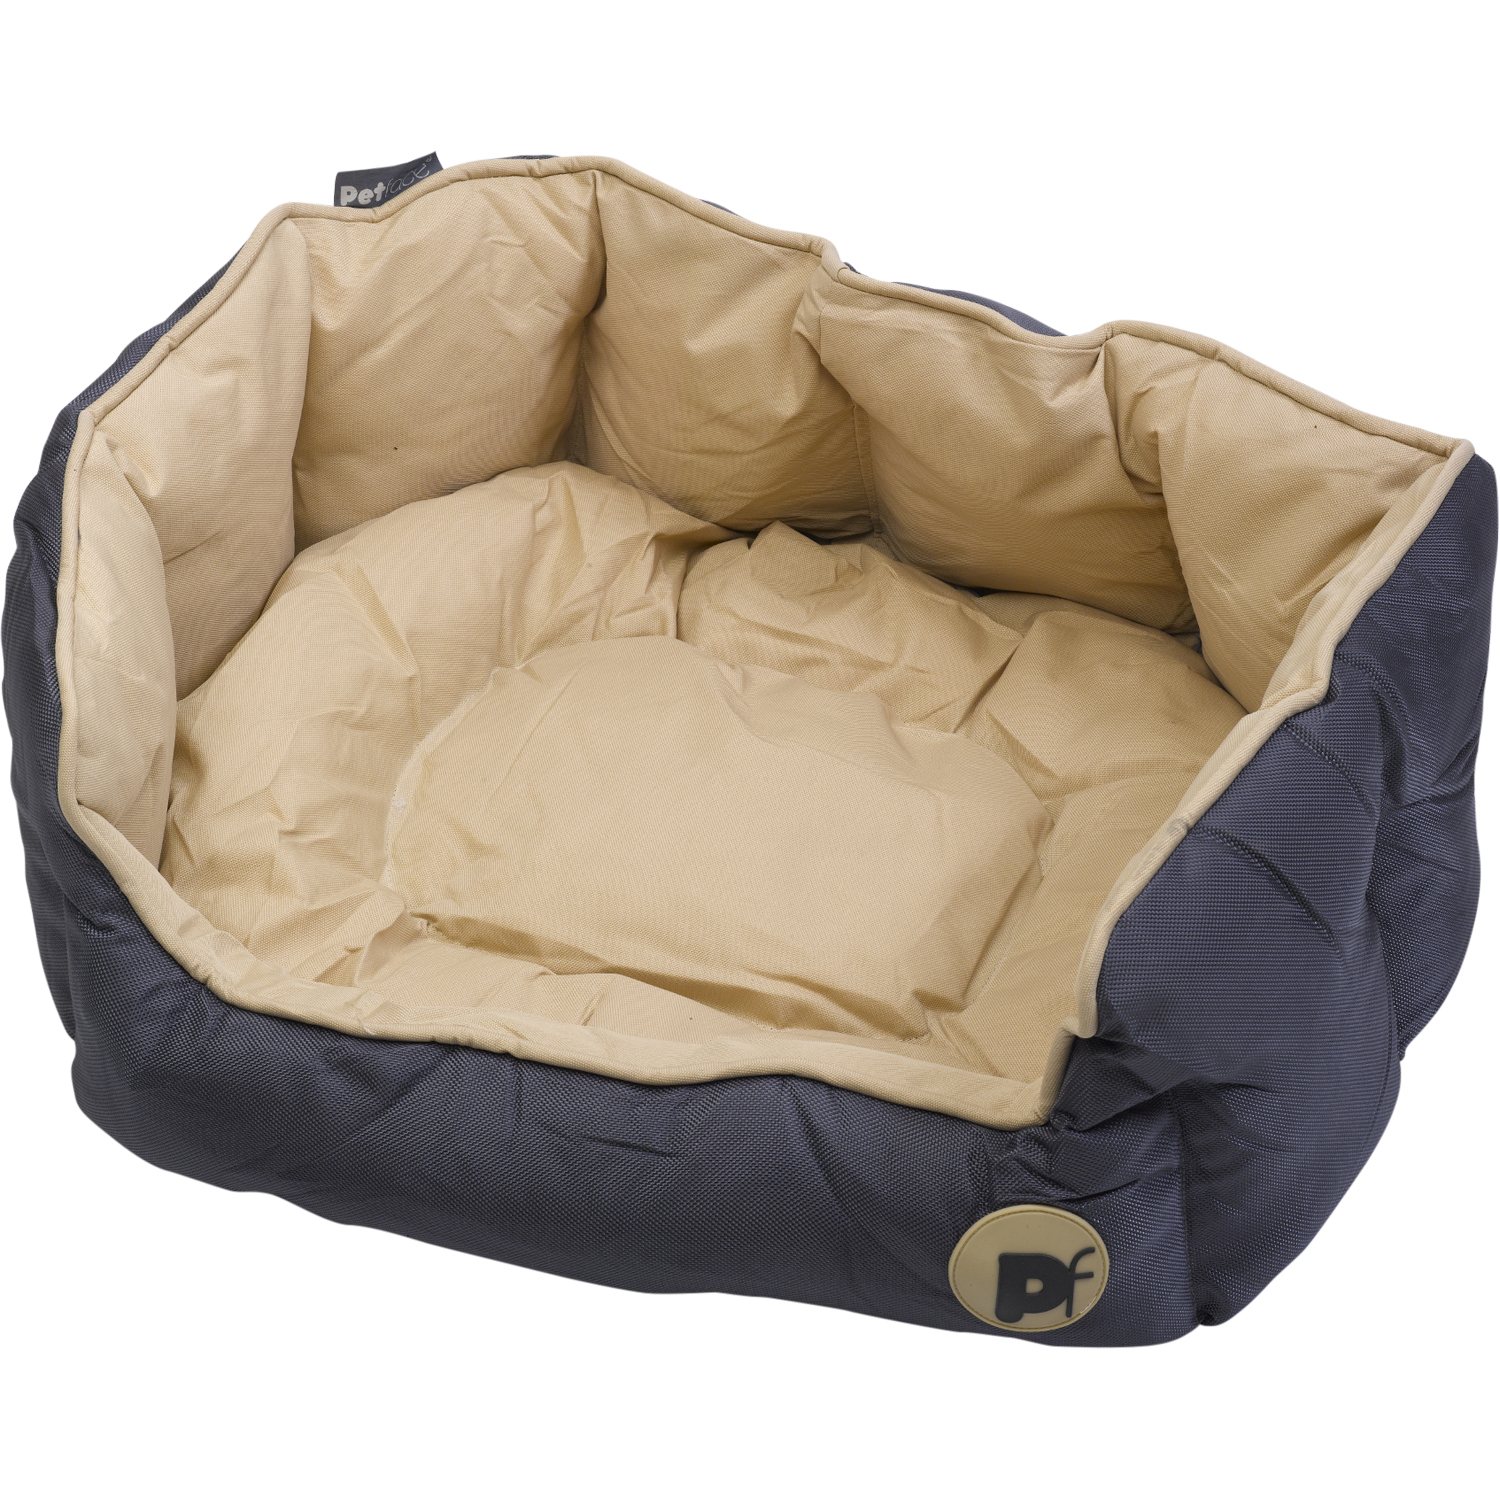 76594635d9e7 Petface Waterproof Oxford Pet Bed Puppy Dog Luxury Oval or Square Bedding  Basket   eBay